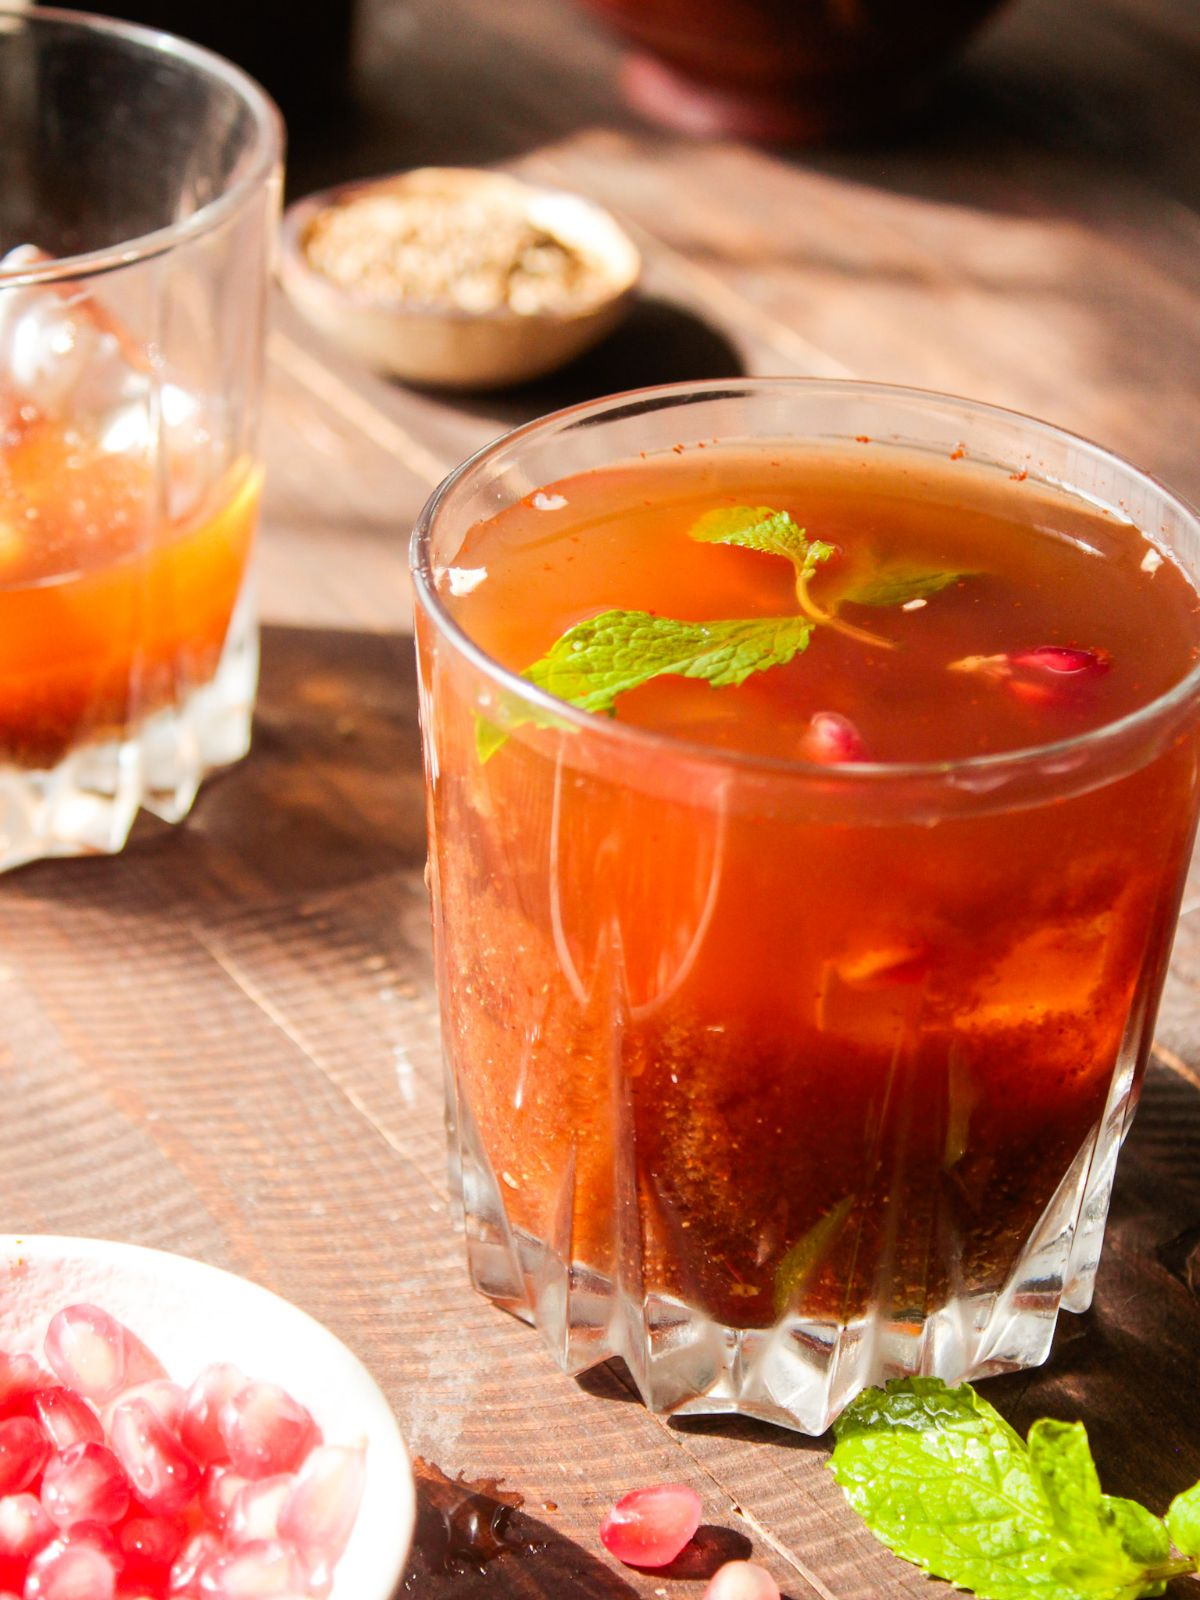 Glass with tamarind cooler topped with mint leaves sitting on wooden table